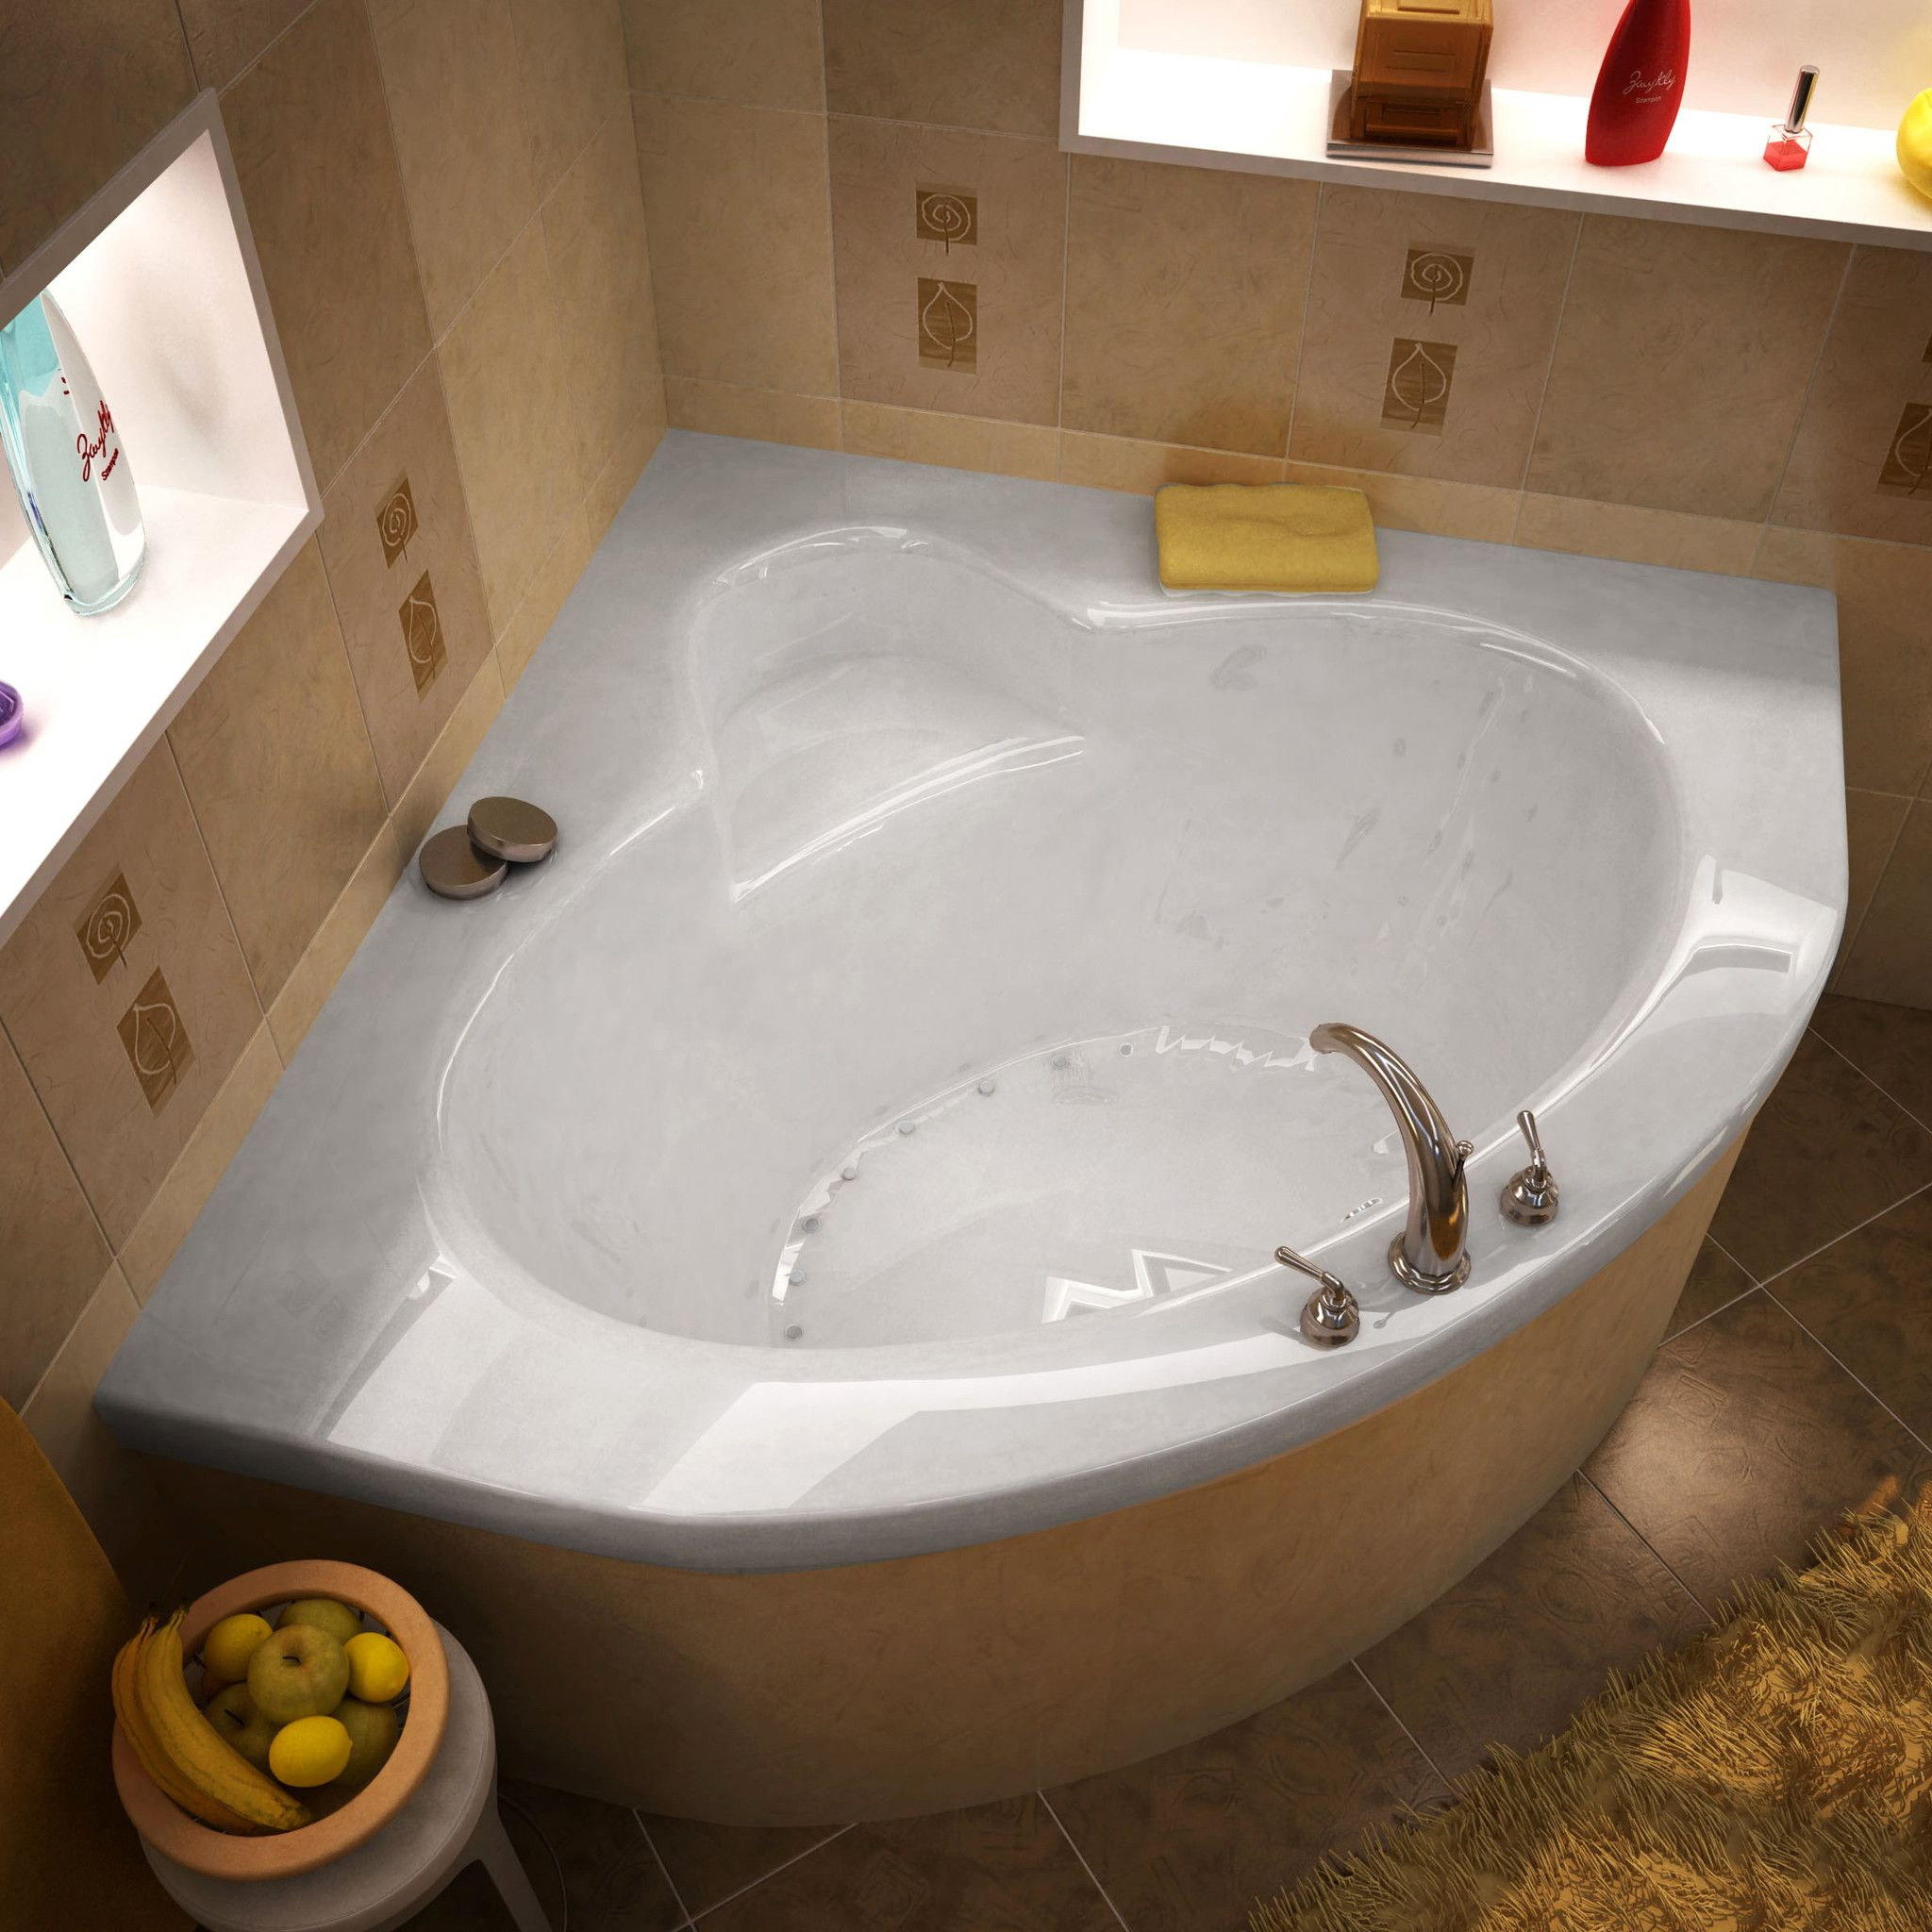 Venzi VZ6060AAL Esta 60 x 60 Corner Air Jetted Bathtub with Center ...